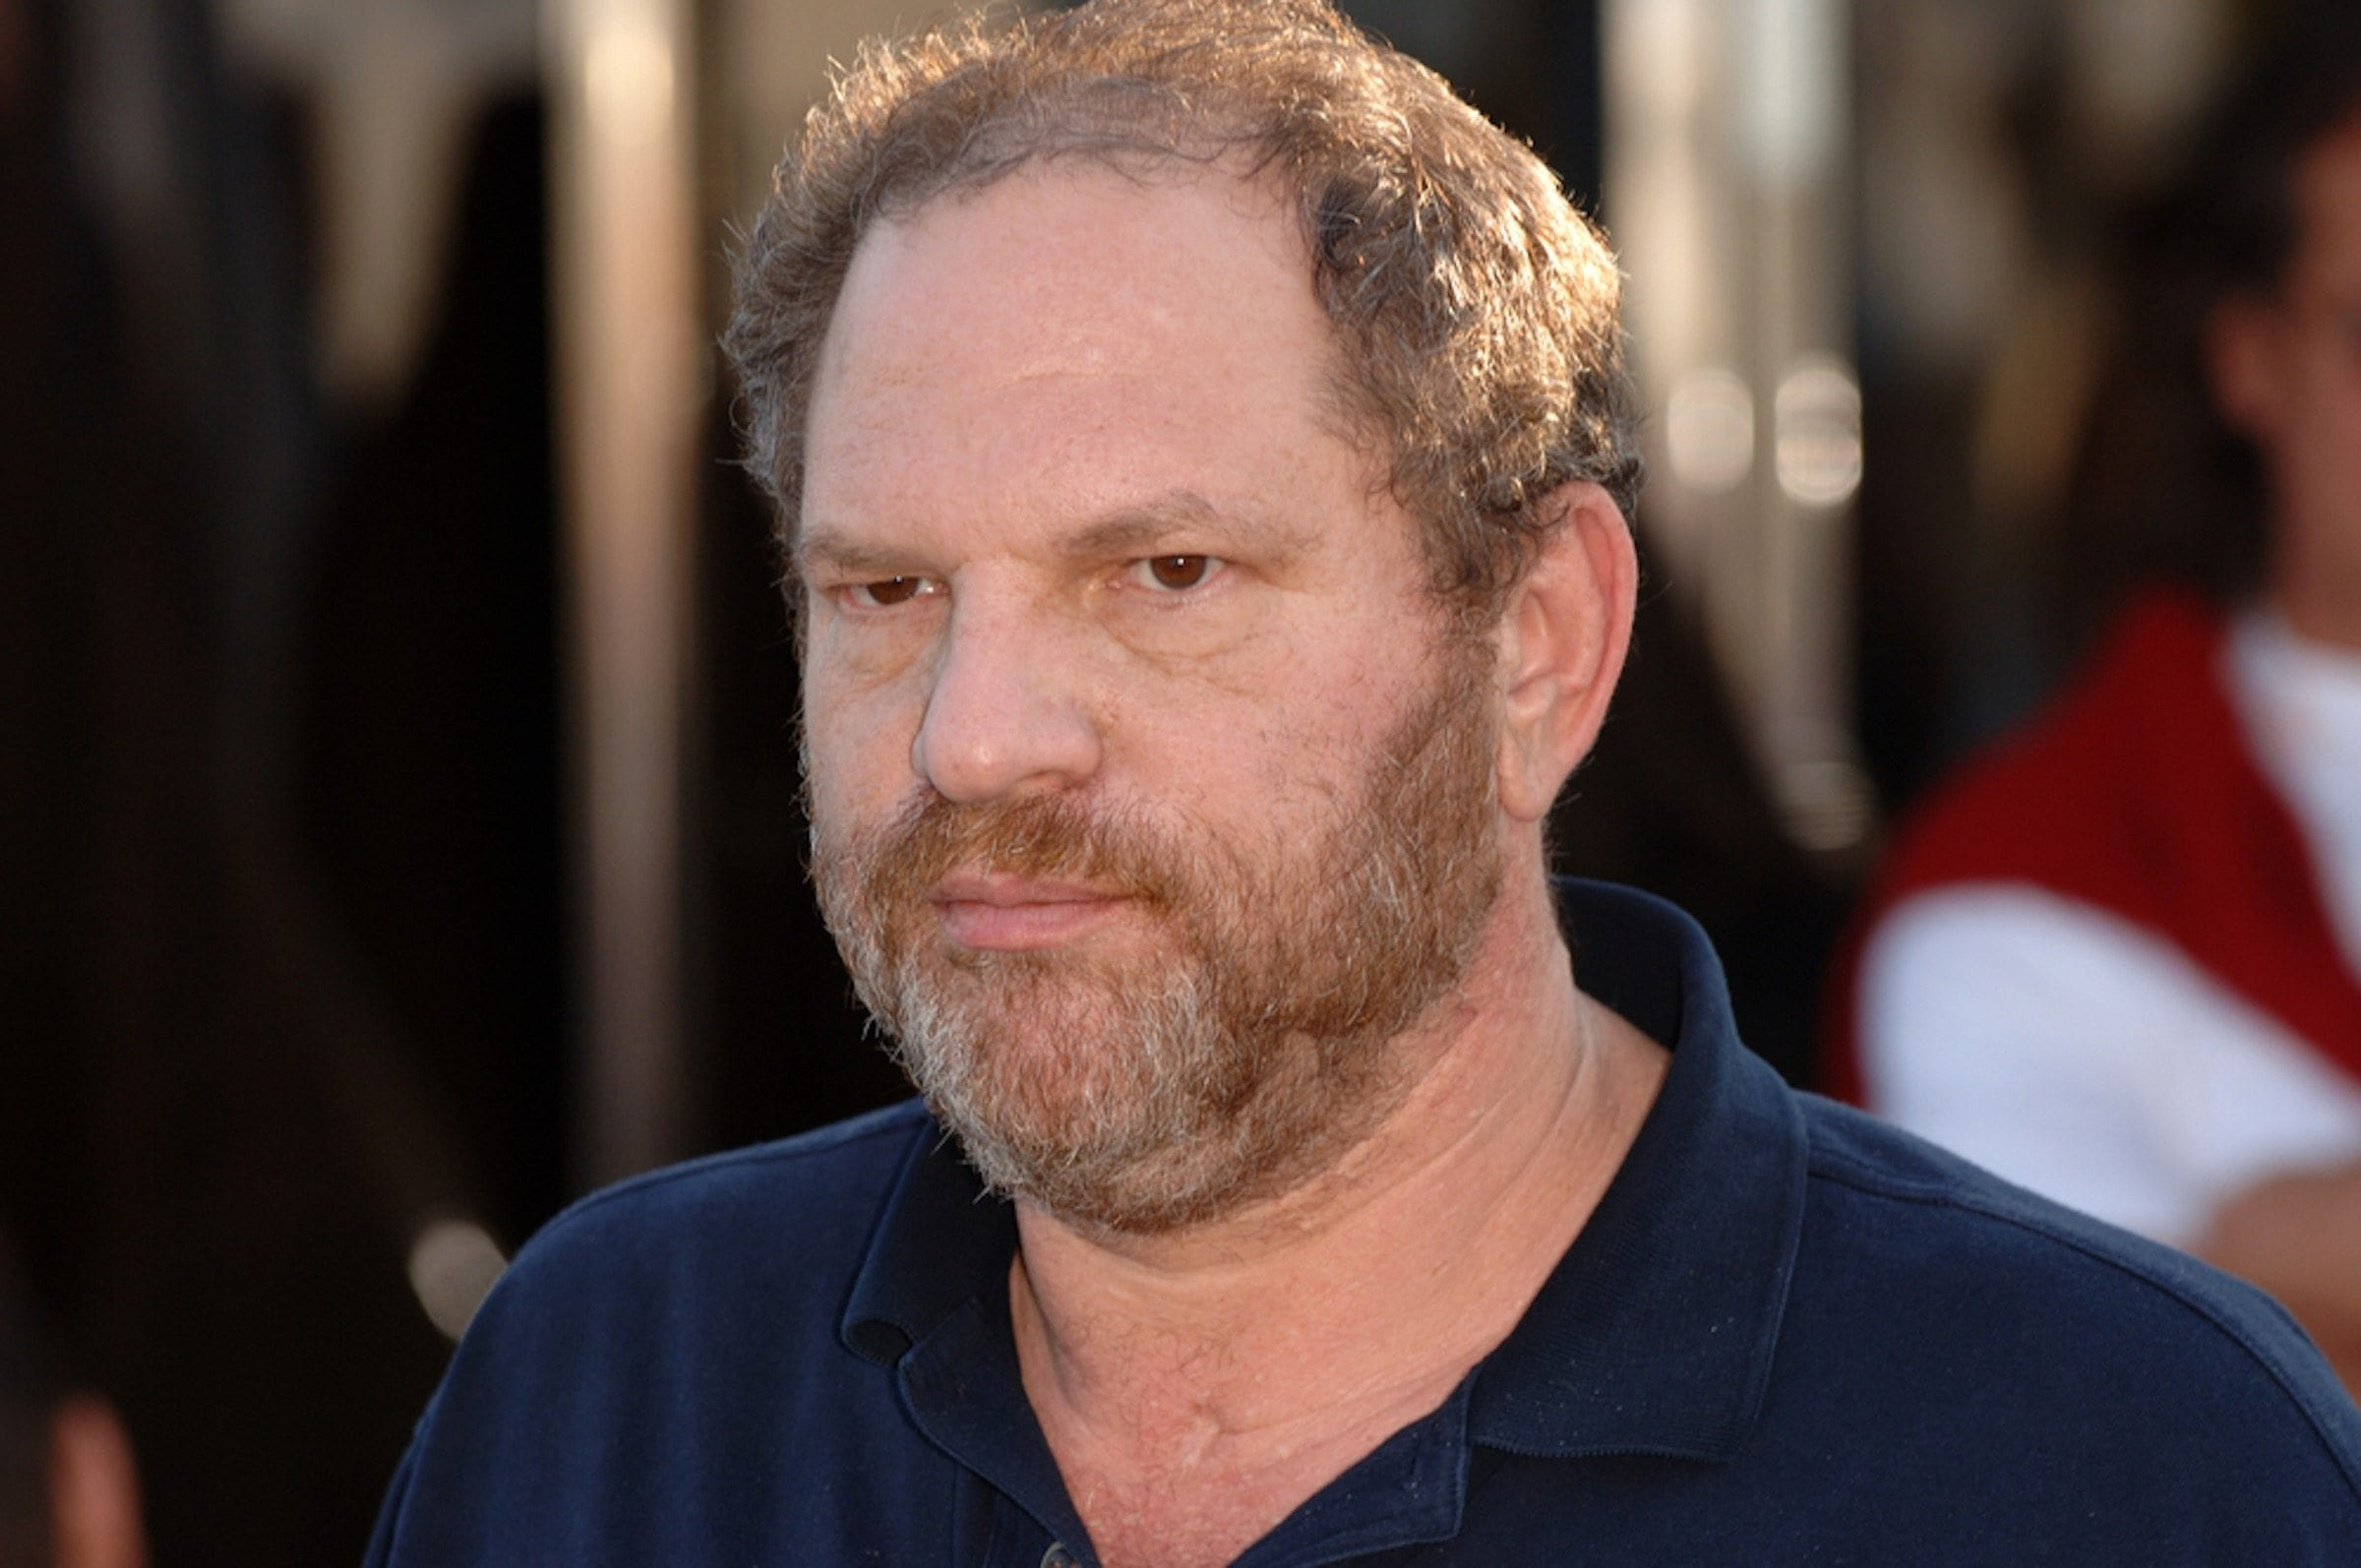 According to a report from the New York Times, Miramax maverick Harvey Weinstein has been fostering a sideline in sexual harrassment for over 30 years.